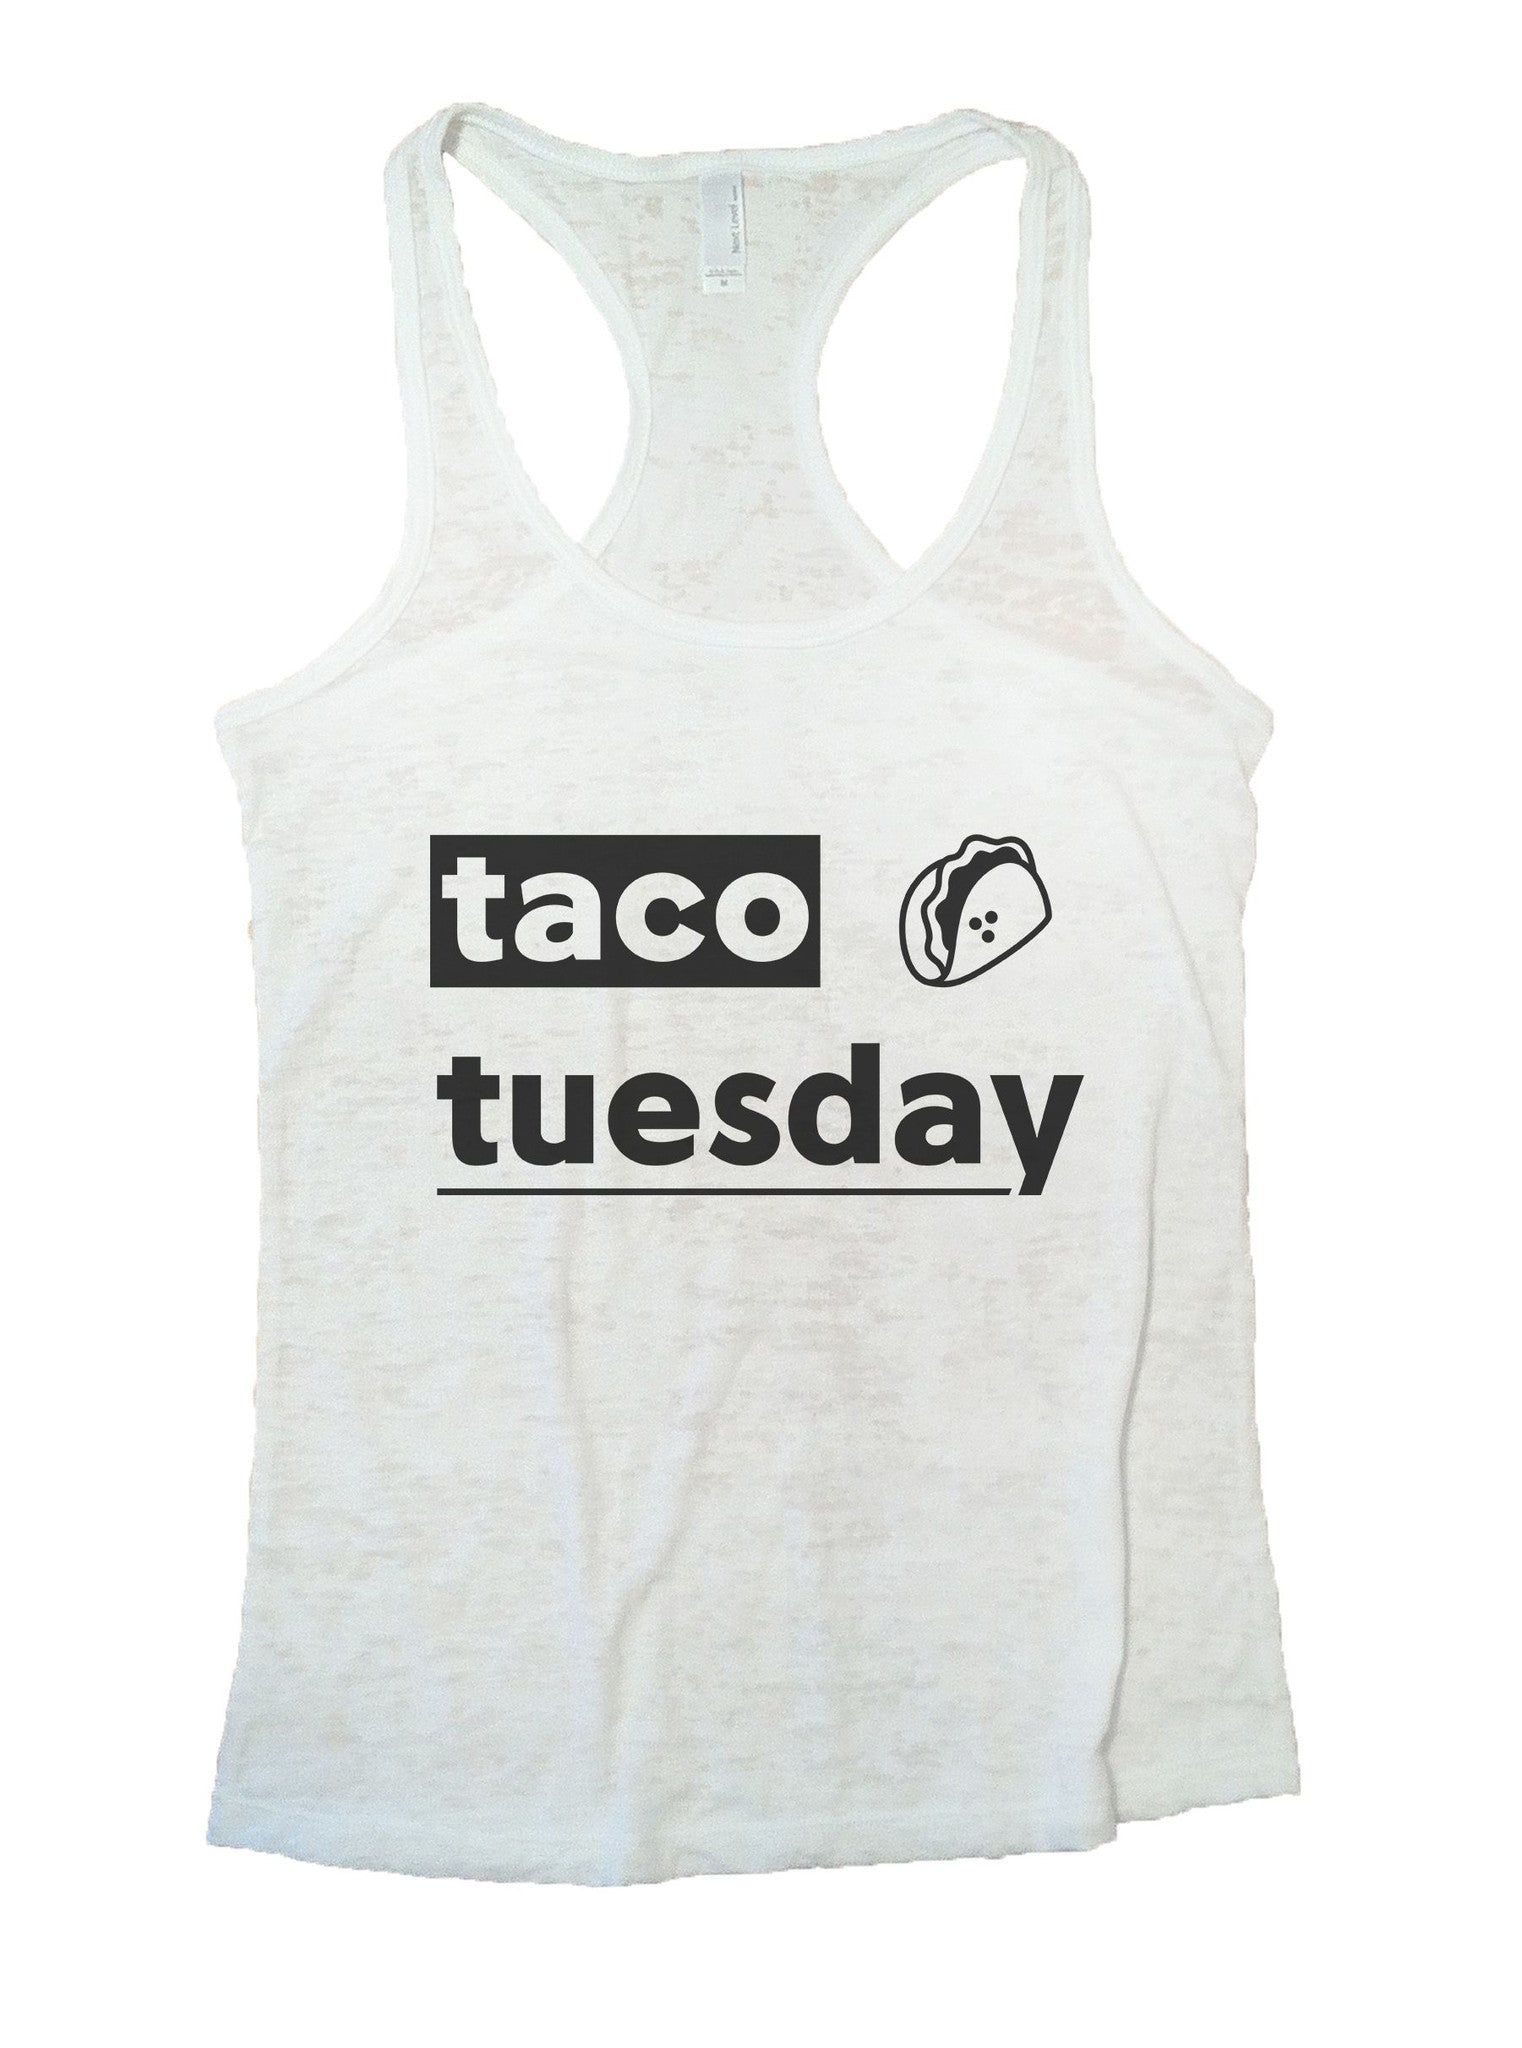 Taco Tuesday Burnout Tank Top By BurnoutTankTops.com - 1084 - Funny Shirts Tank Tops Burnouts and Triblends  - 5